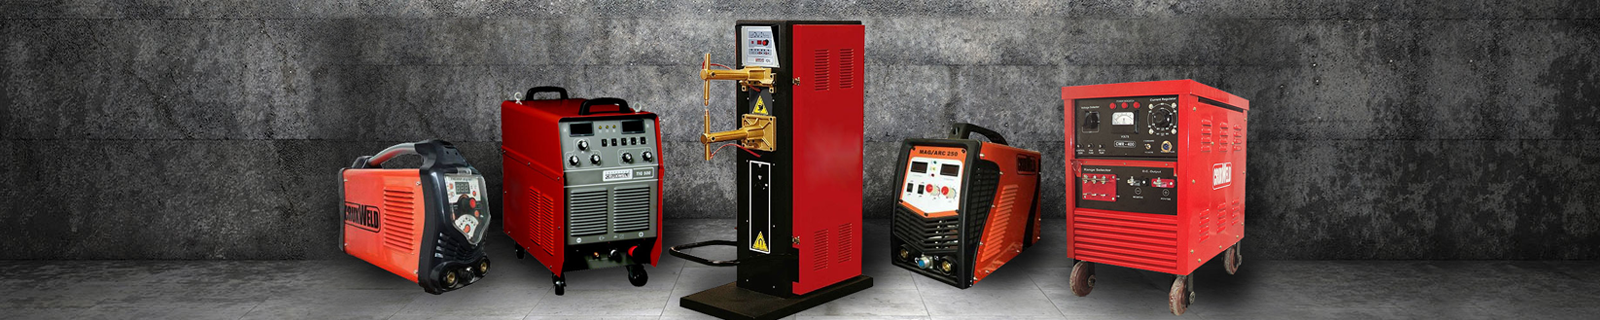 Welding cutting machine manufacturers India